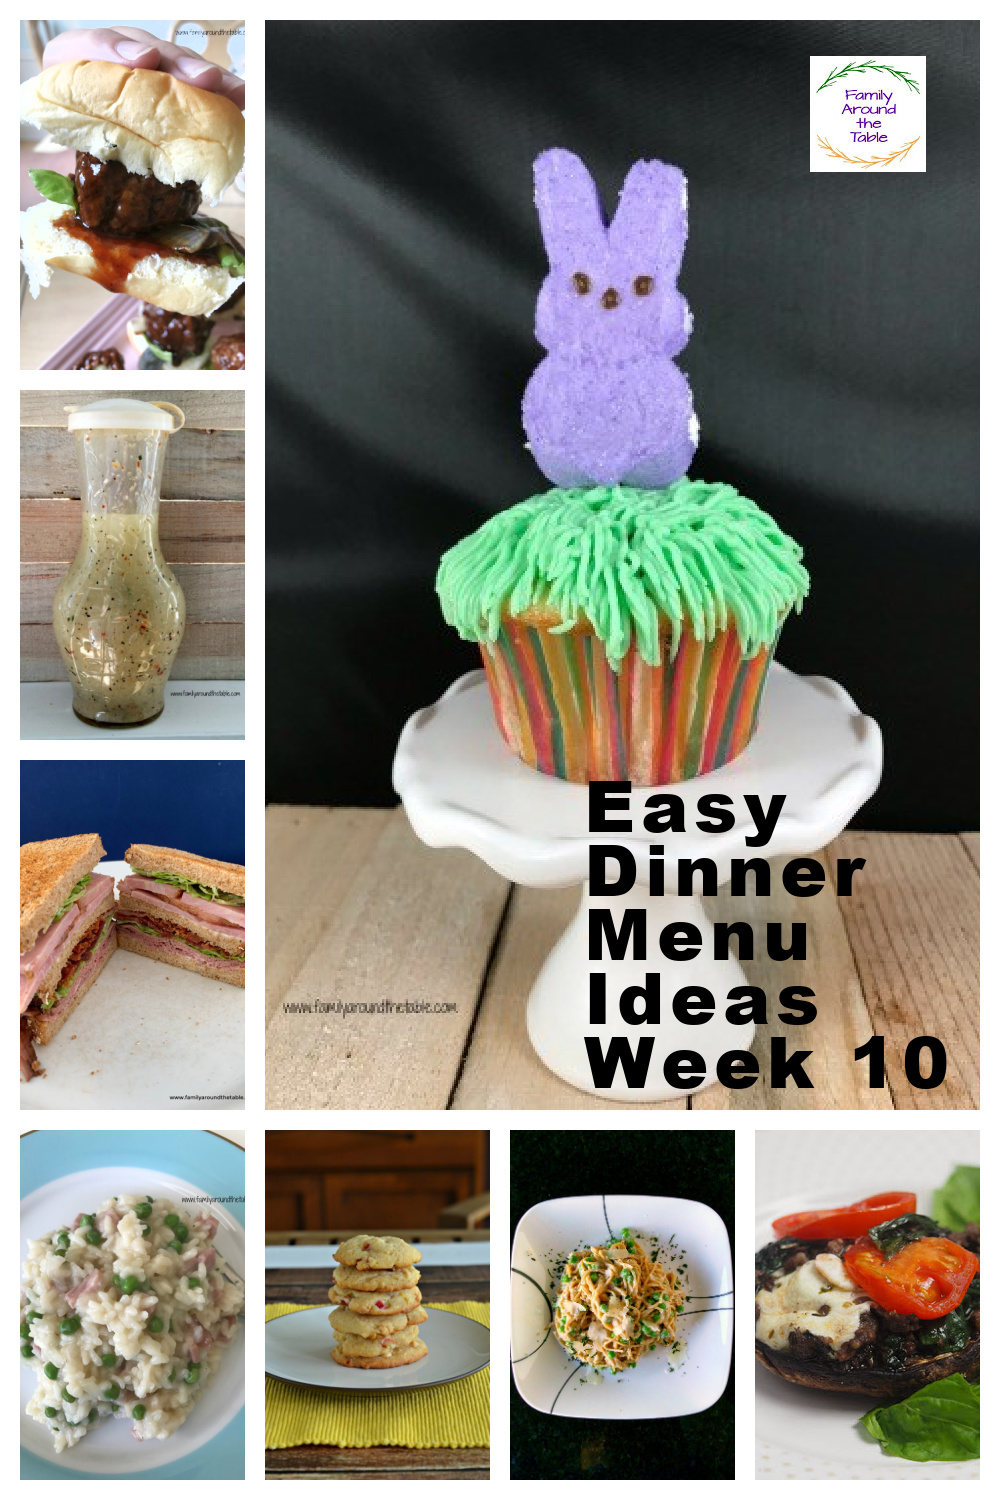 Easy Dinner Menu Ideas Week 10 collage of photos.